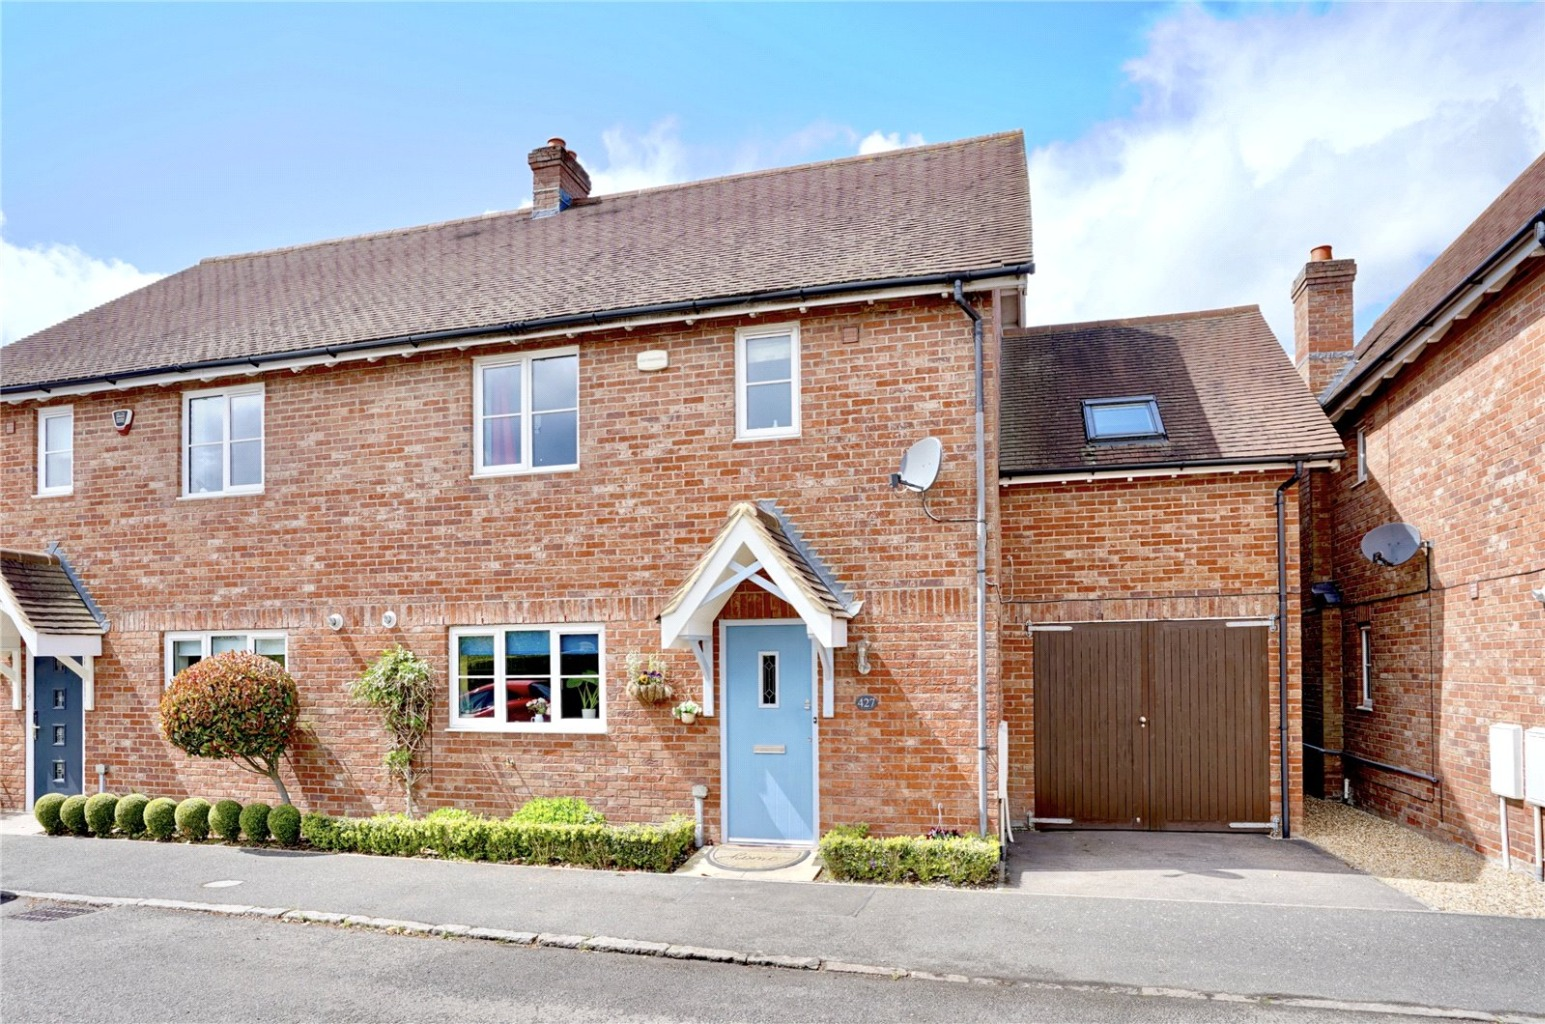 4 bed semi-detached house for sale in Great North Road, St. Neots, PE19